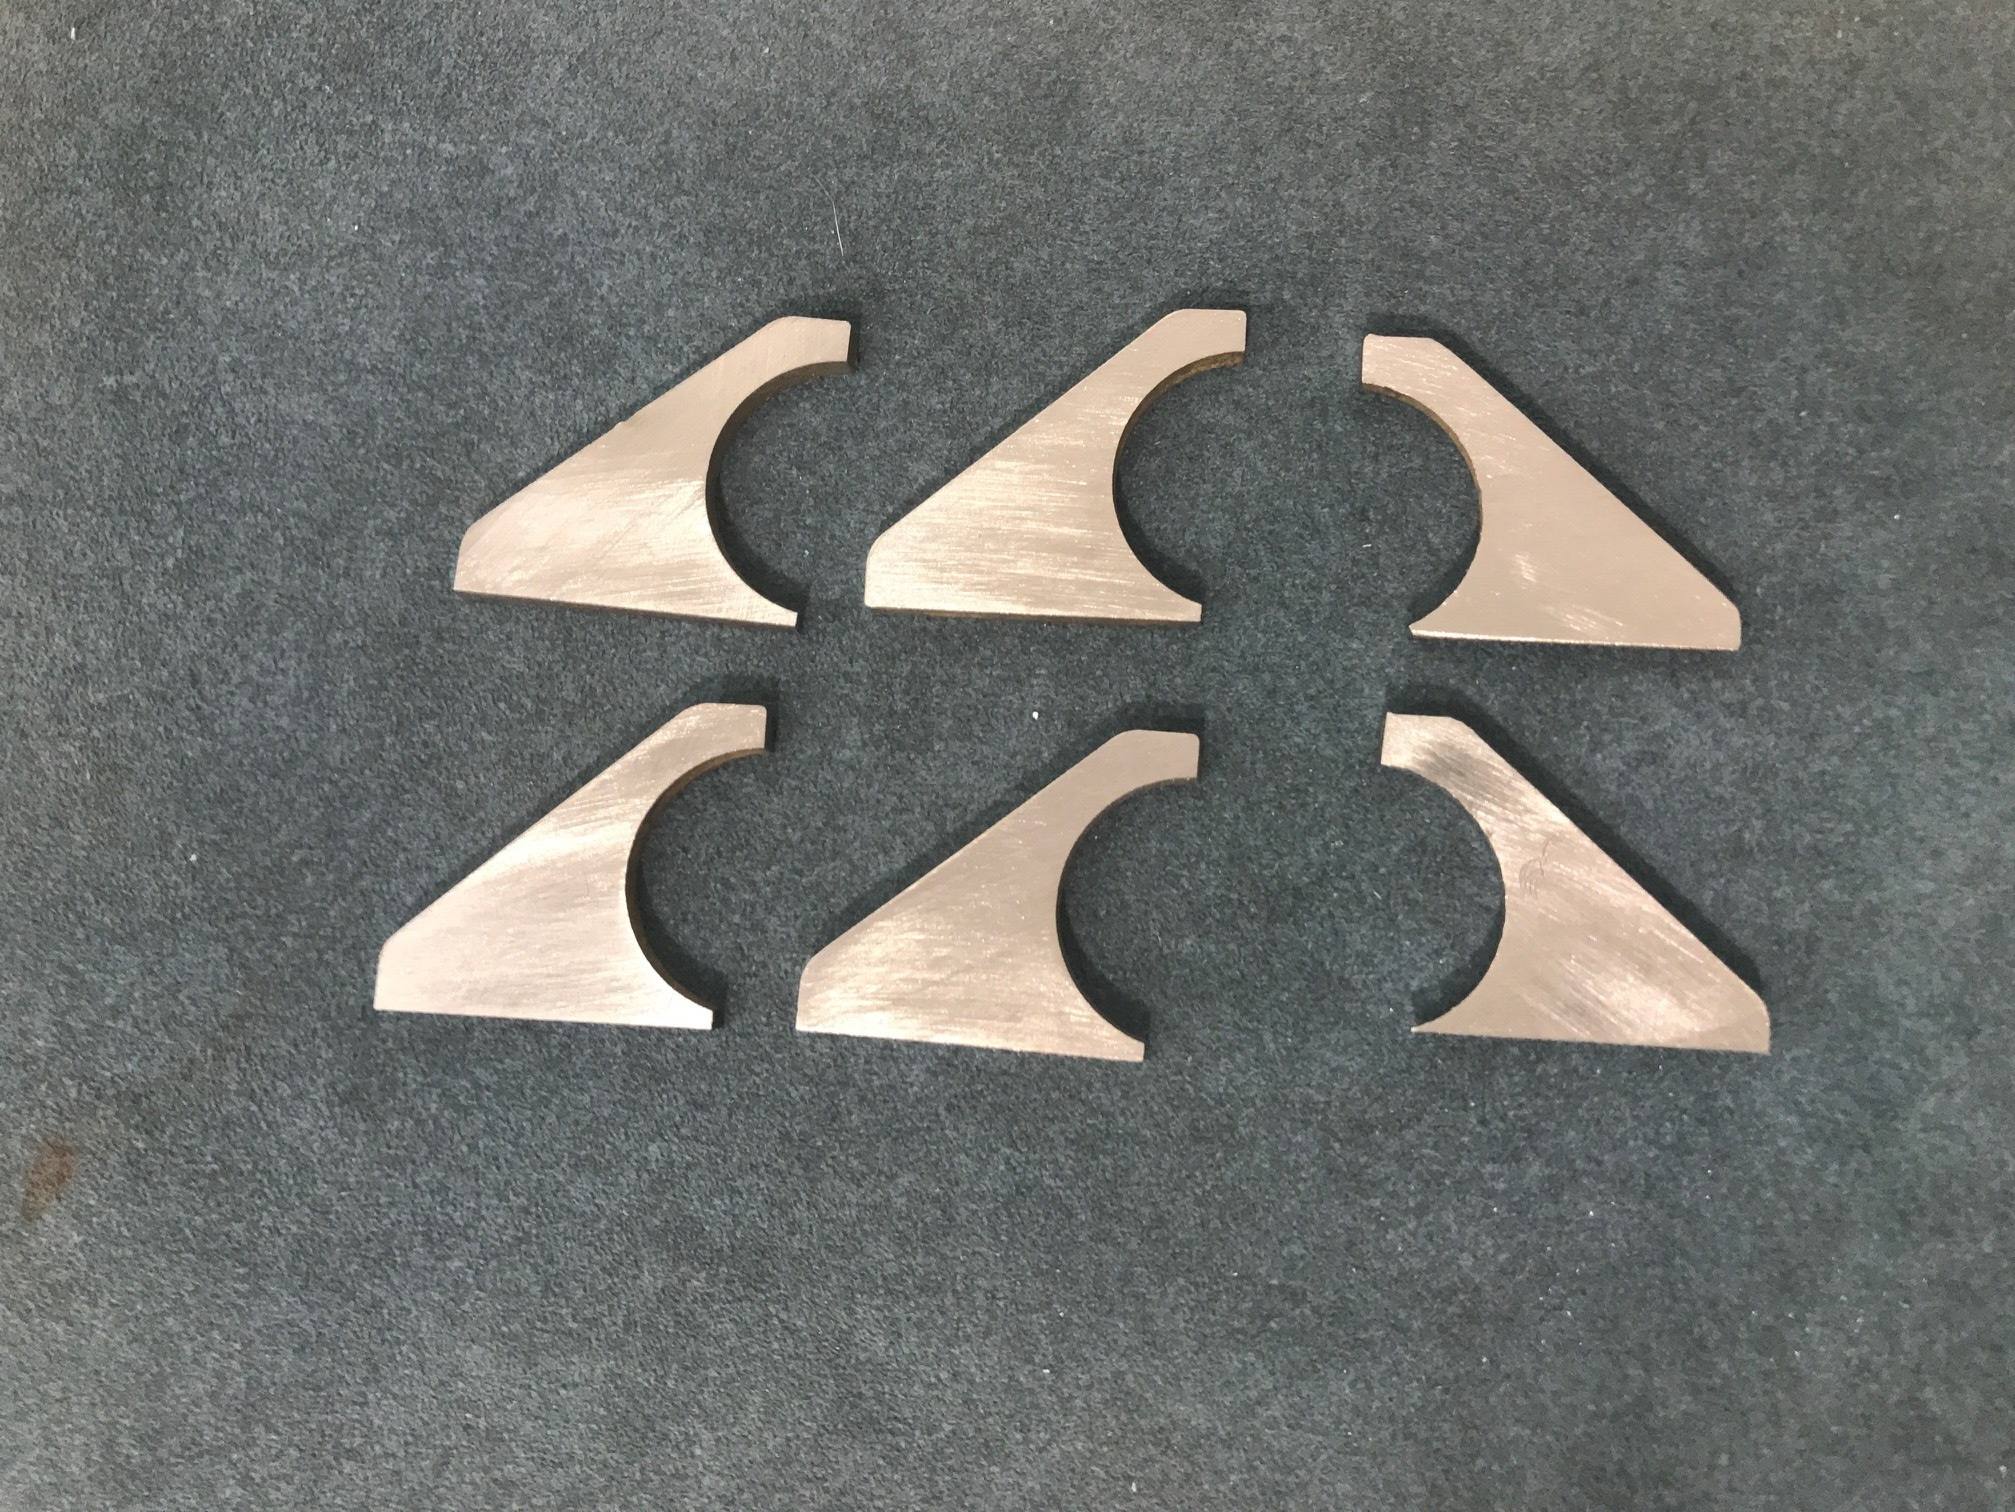 End gussets on left, middle gussets on right